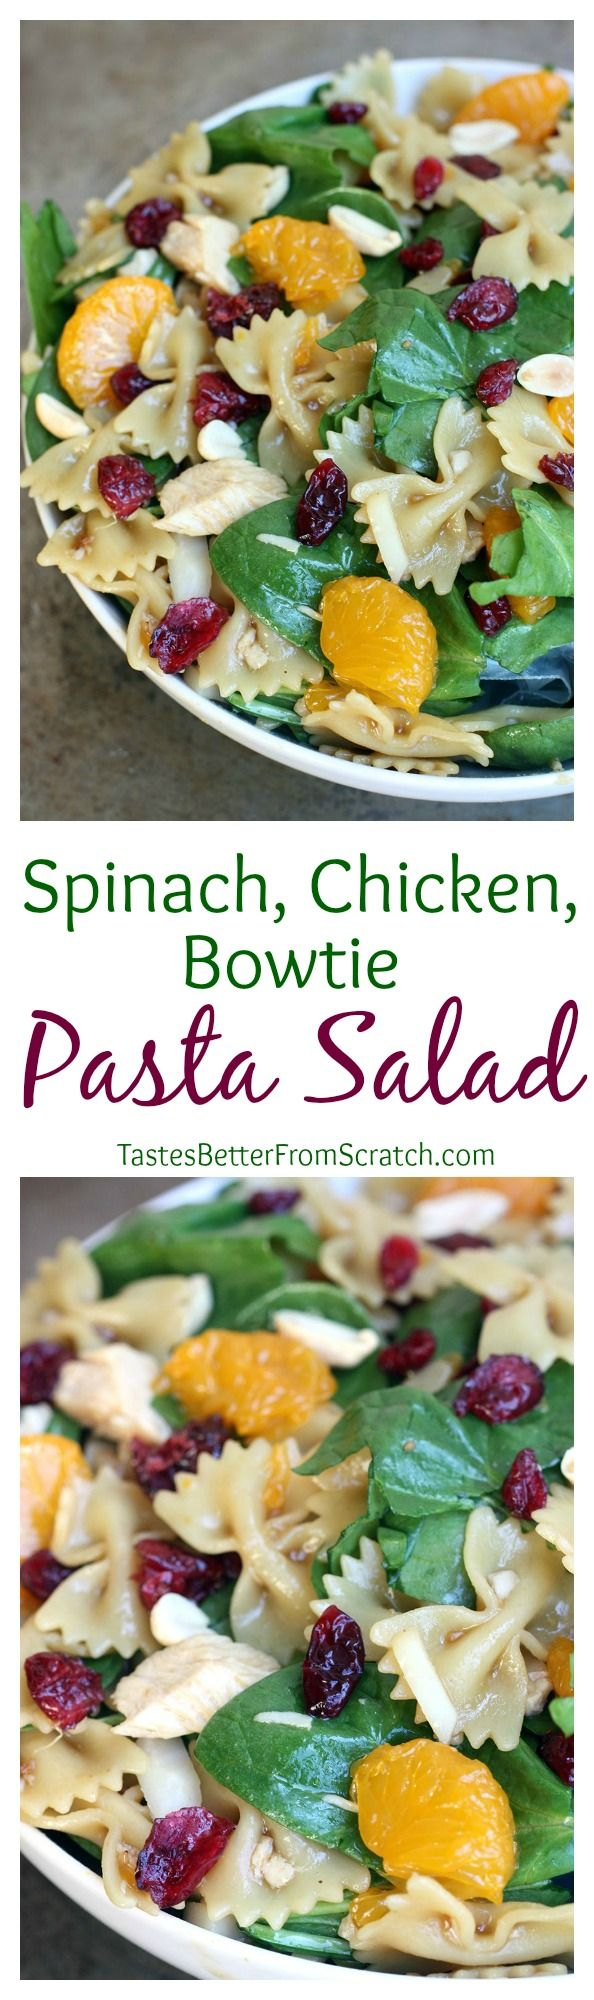 This is our family's FAVORITE salad and it's so easy to make! Recipe from TastesBetterFromScratch.com